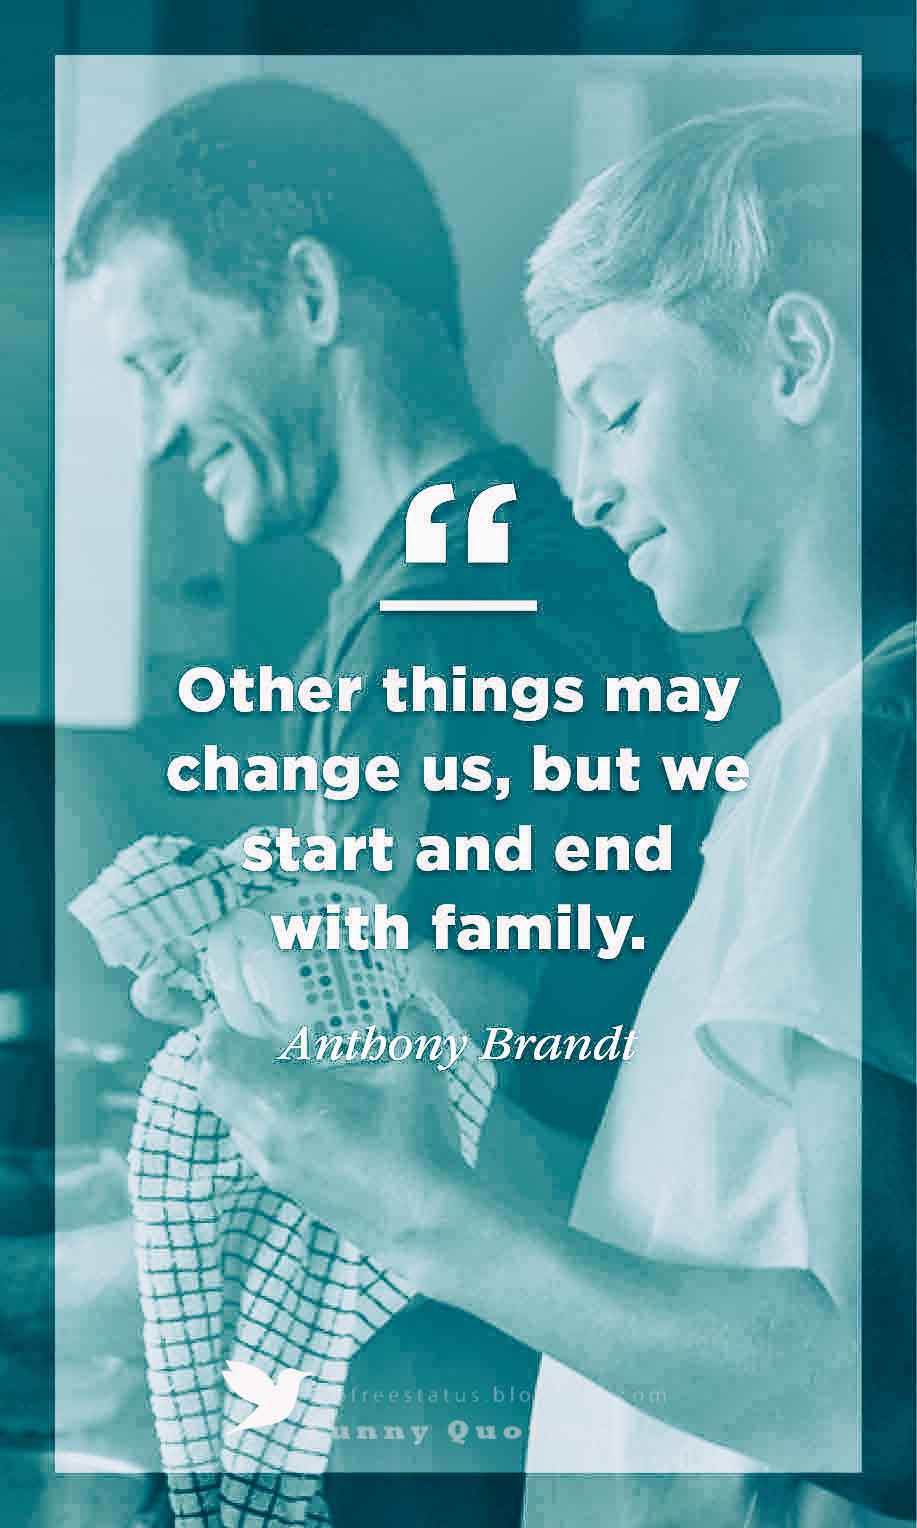 Other things mat change us, but we start and end with family - Antbony Brandt